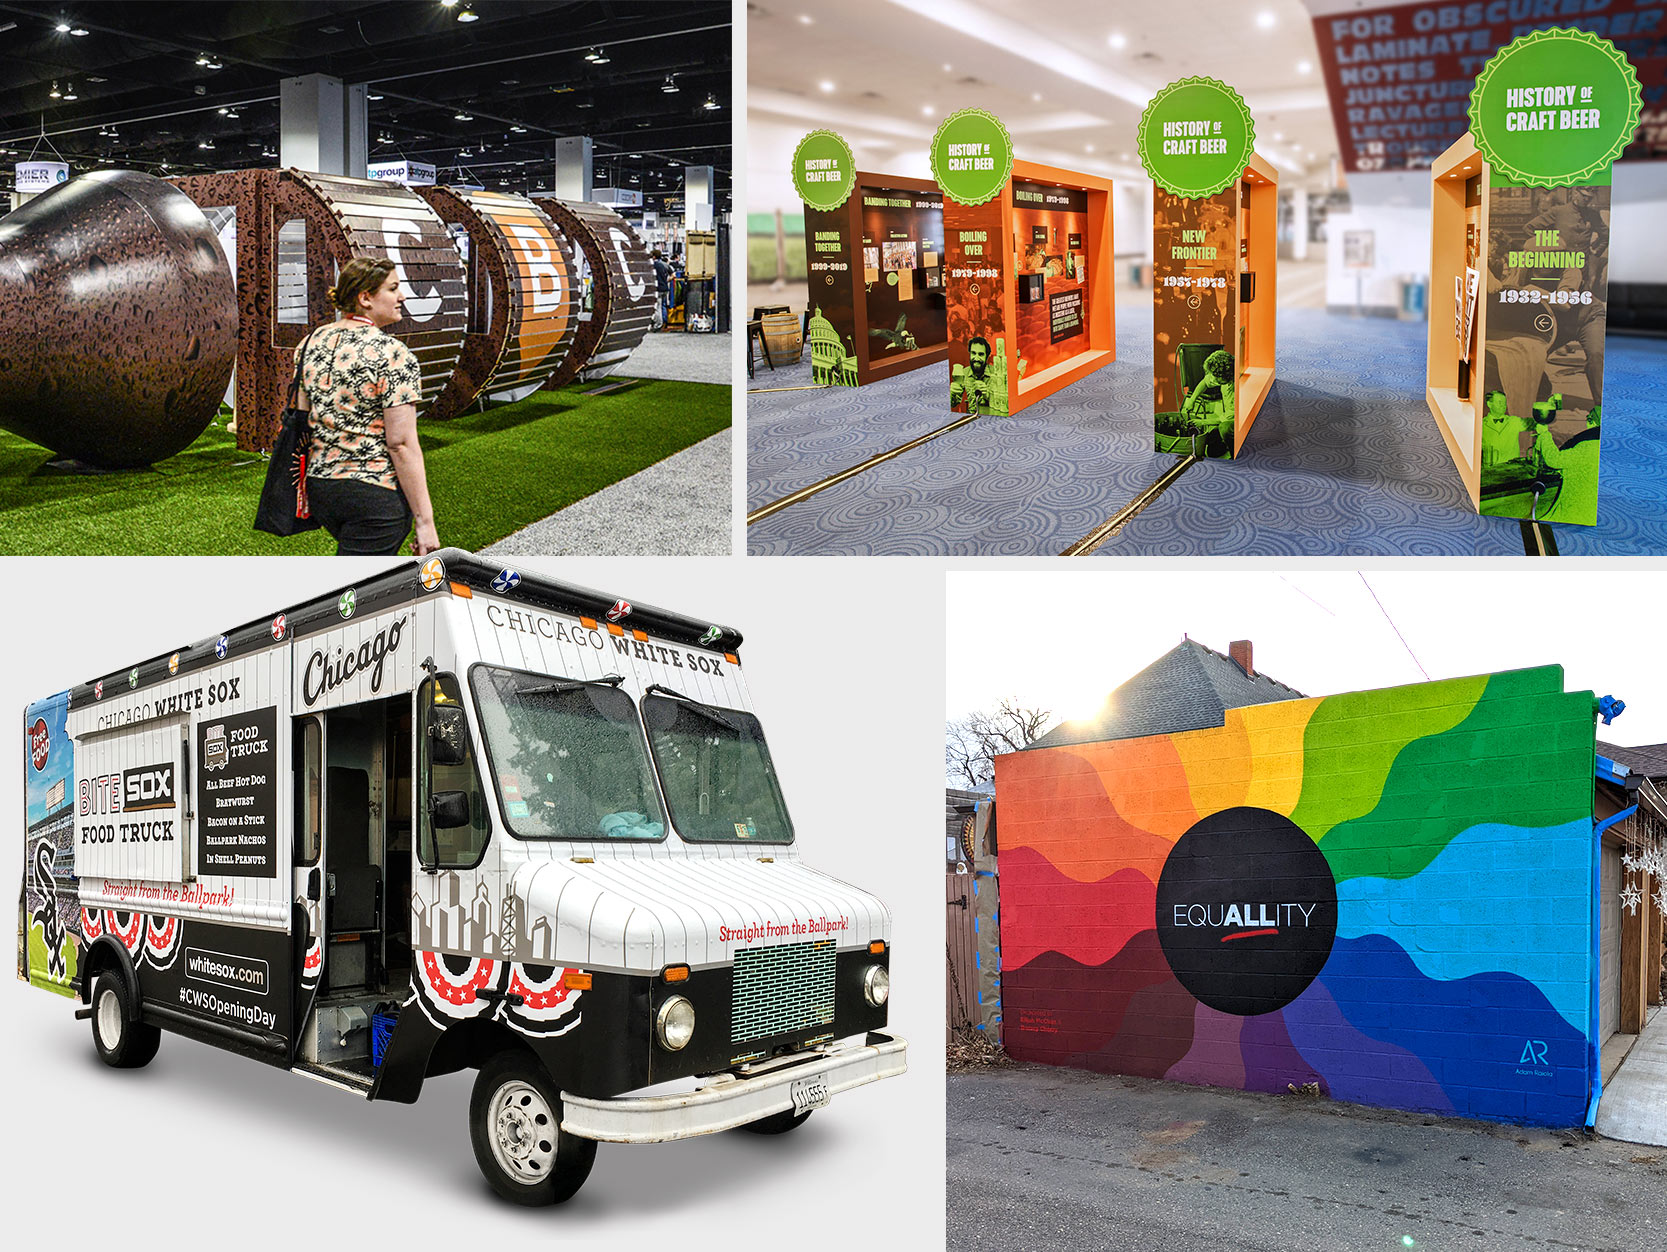 Four examples of environmental graphics including a food truck for the Chicago White Sox and a History of Craft Beer exhibit.